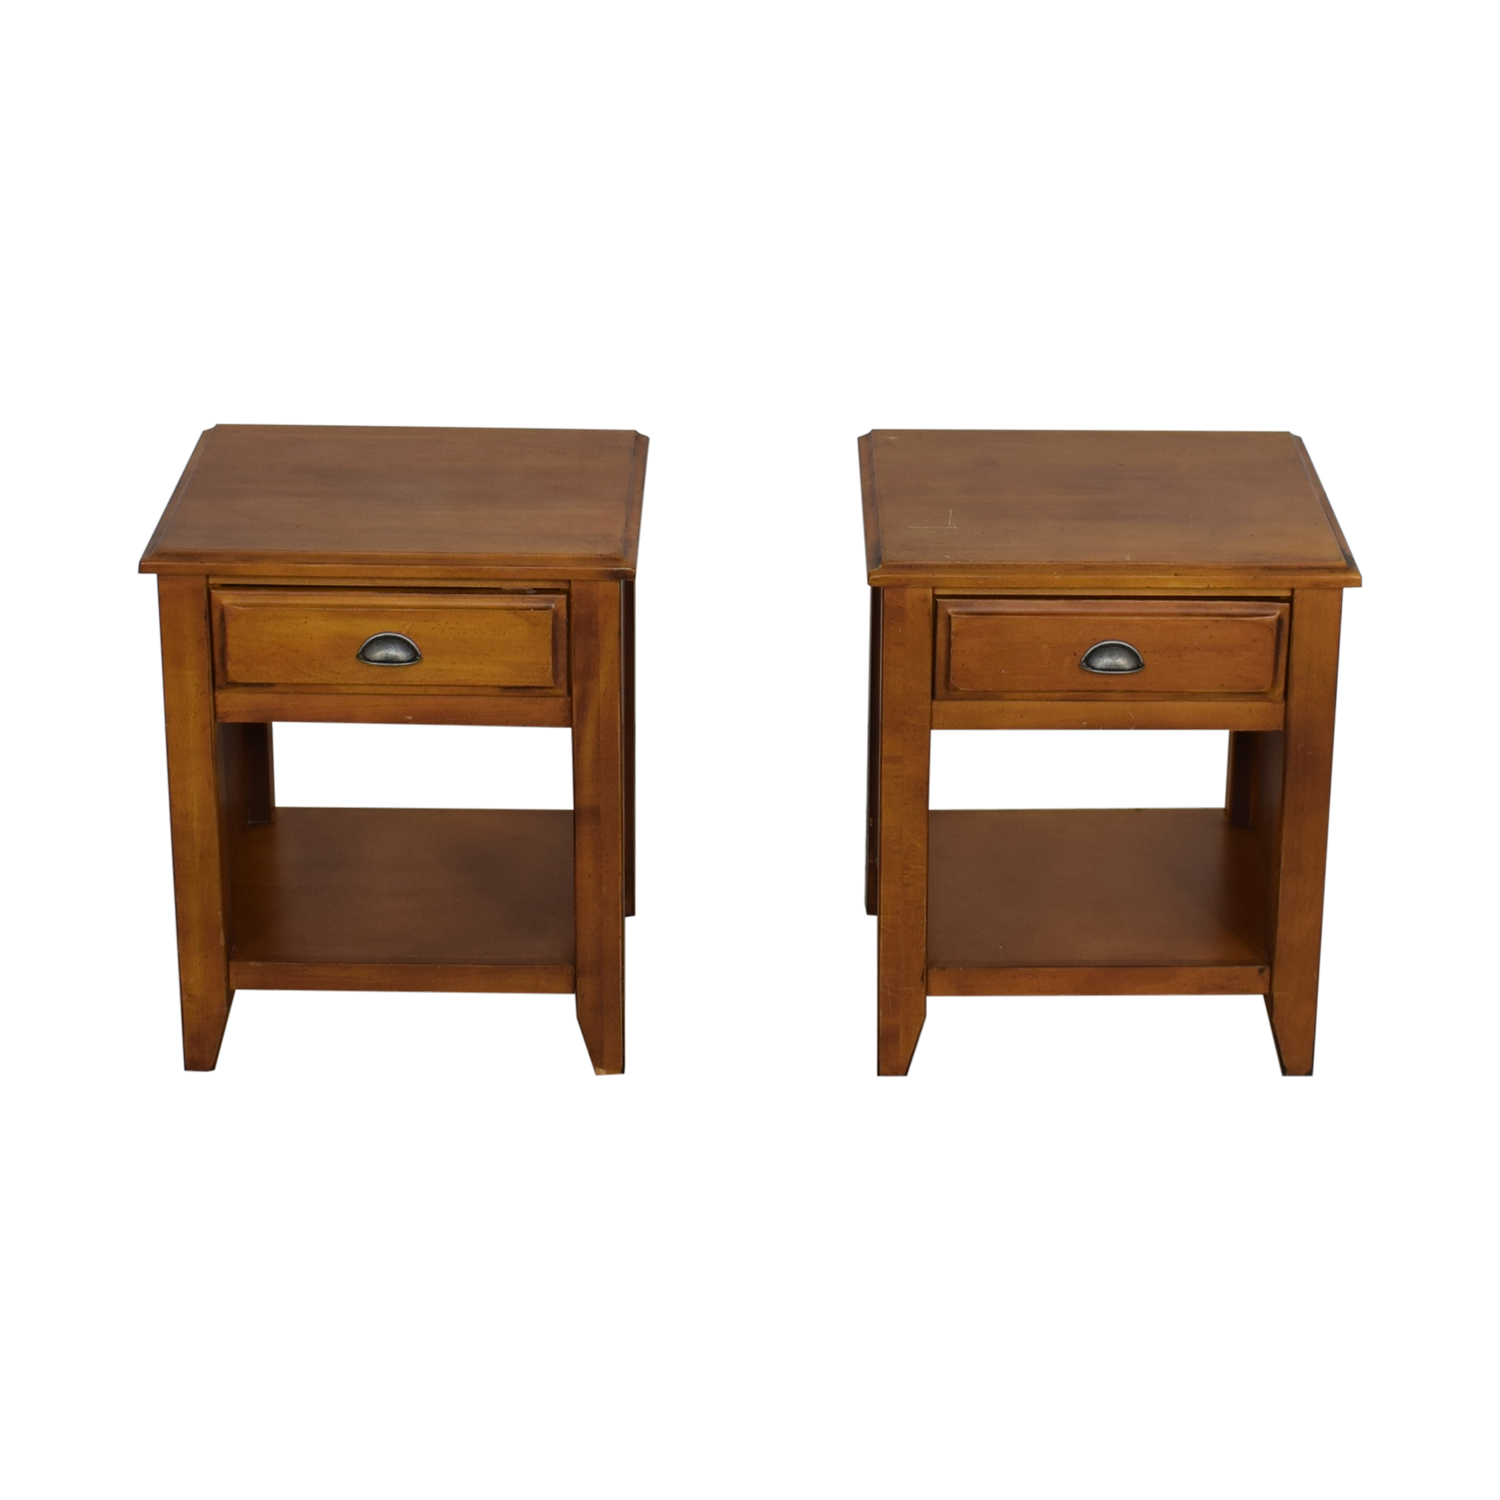 buy Pottery Barn Nightstand with Drawers Pottery Barn Tables